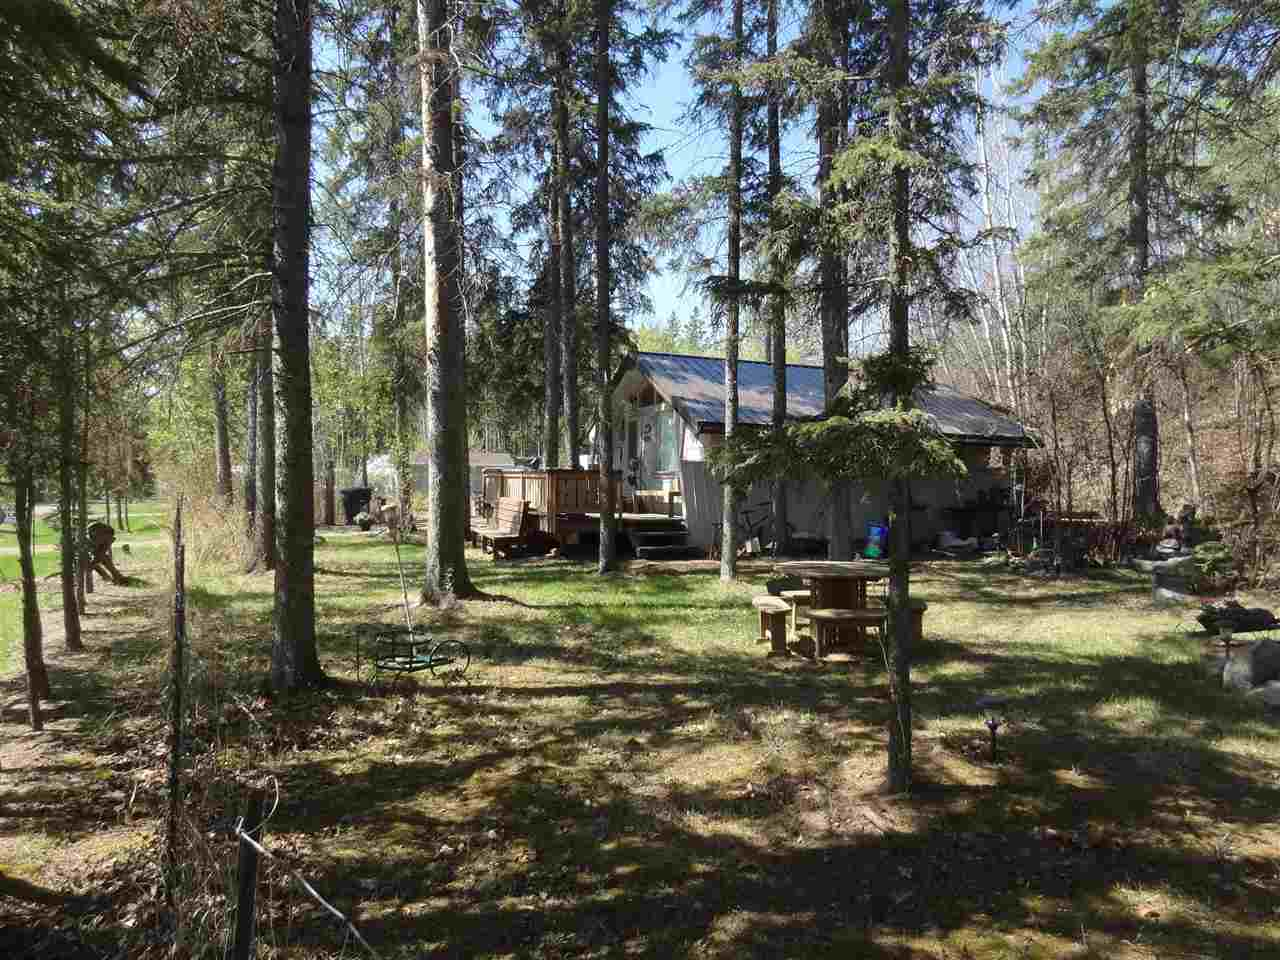 """Fully serviced cottage at Sunrise Beach on Sandy Beach - West of Morinville.  Cozy 1 bedroom cottage with separate guest/bunk house, storage shed, and shower house/ washroom.  One row back from lake - easy lake access a short walk away.  Gated and fenced with page wire. Just shy of .5 of an acre.  This was originally 3 - 60' x 120"""" lots which were combined into one title - potential to possibly convert back into 3. Can be used year round with the exception of water in the cabin (shower house/washroom can operate year round)  1800 gallon cistern and septic holding tank.  2 driveways allowing for ample access for weekend visitors. This affordable, peaceful retreat is the perfect place to make lifelong memories."""